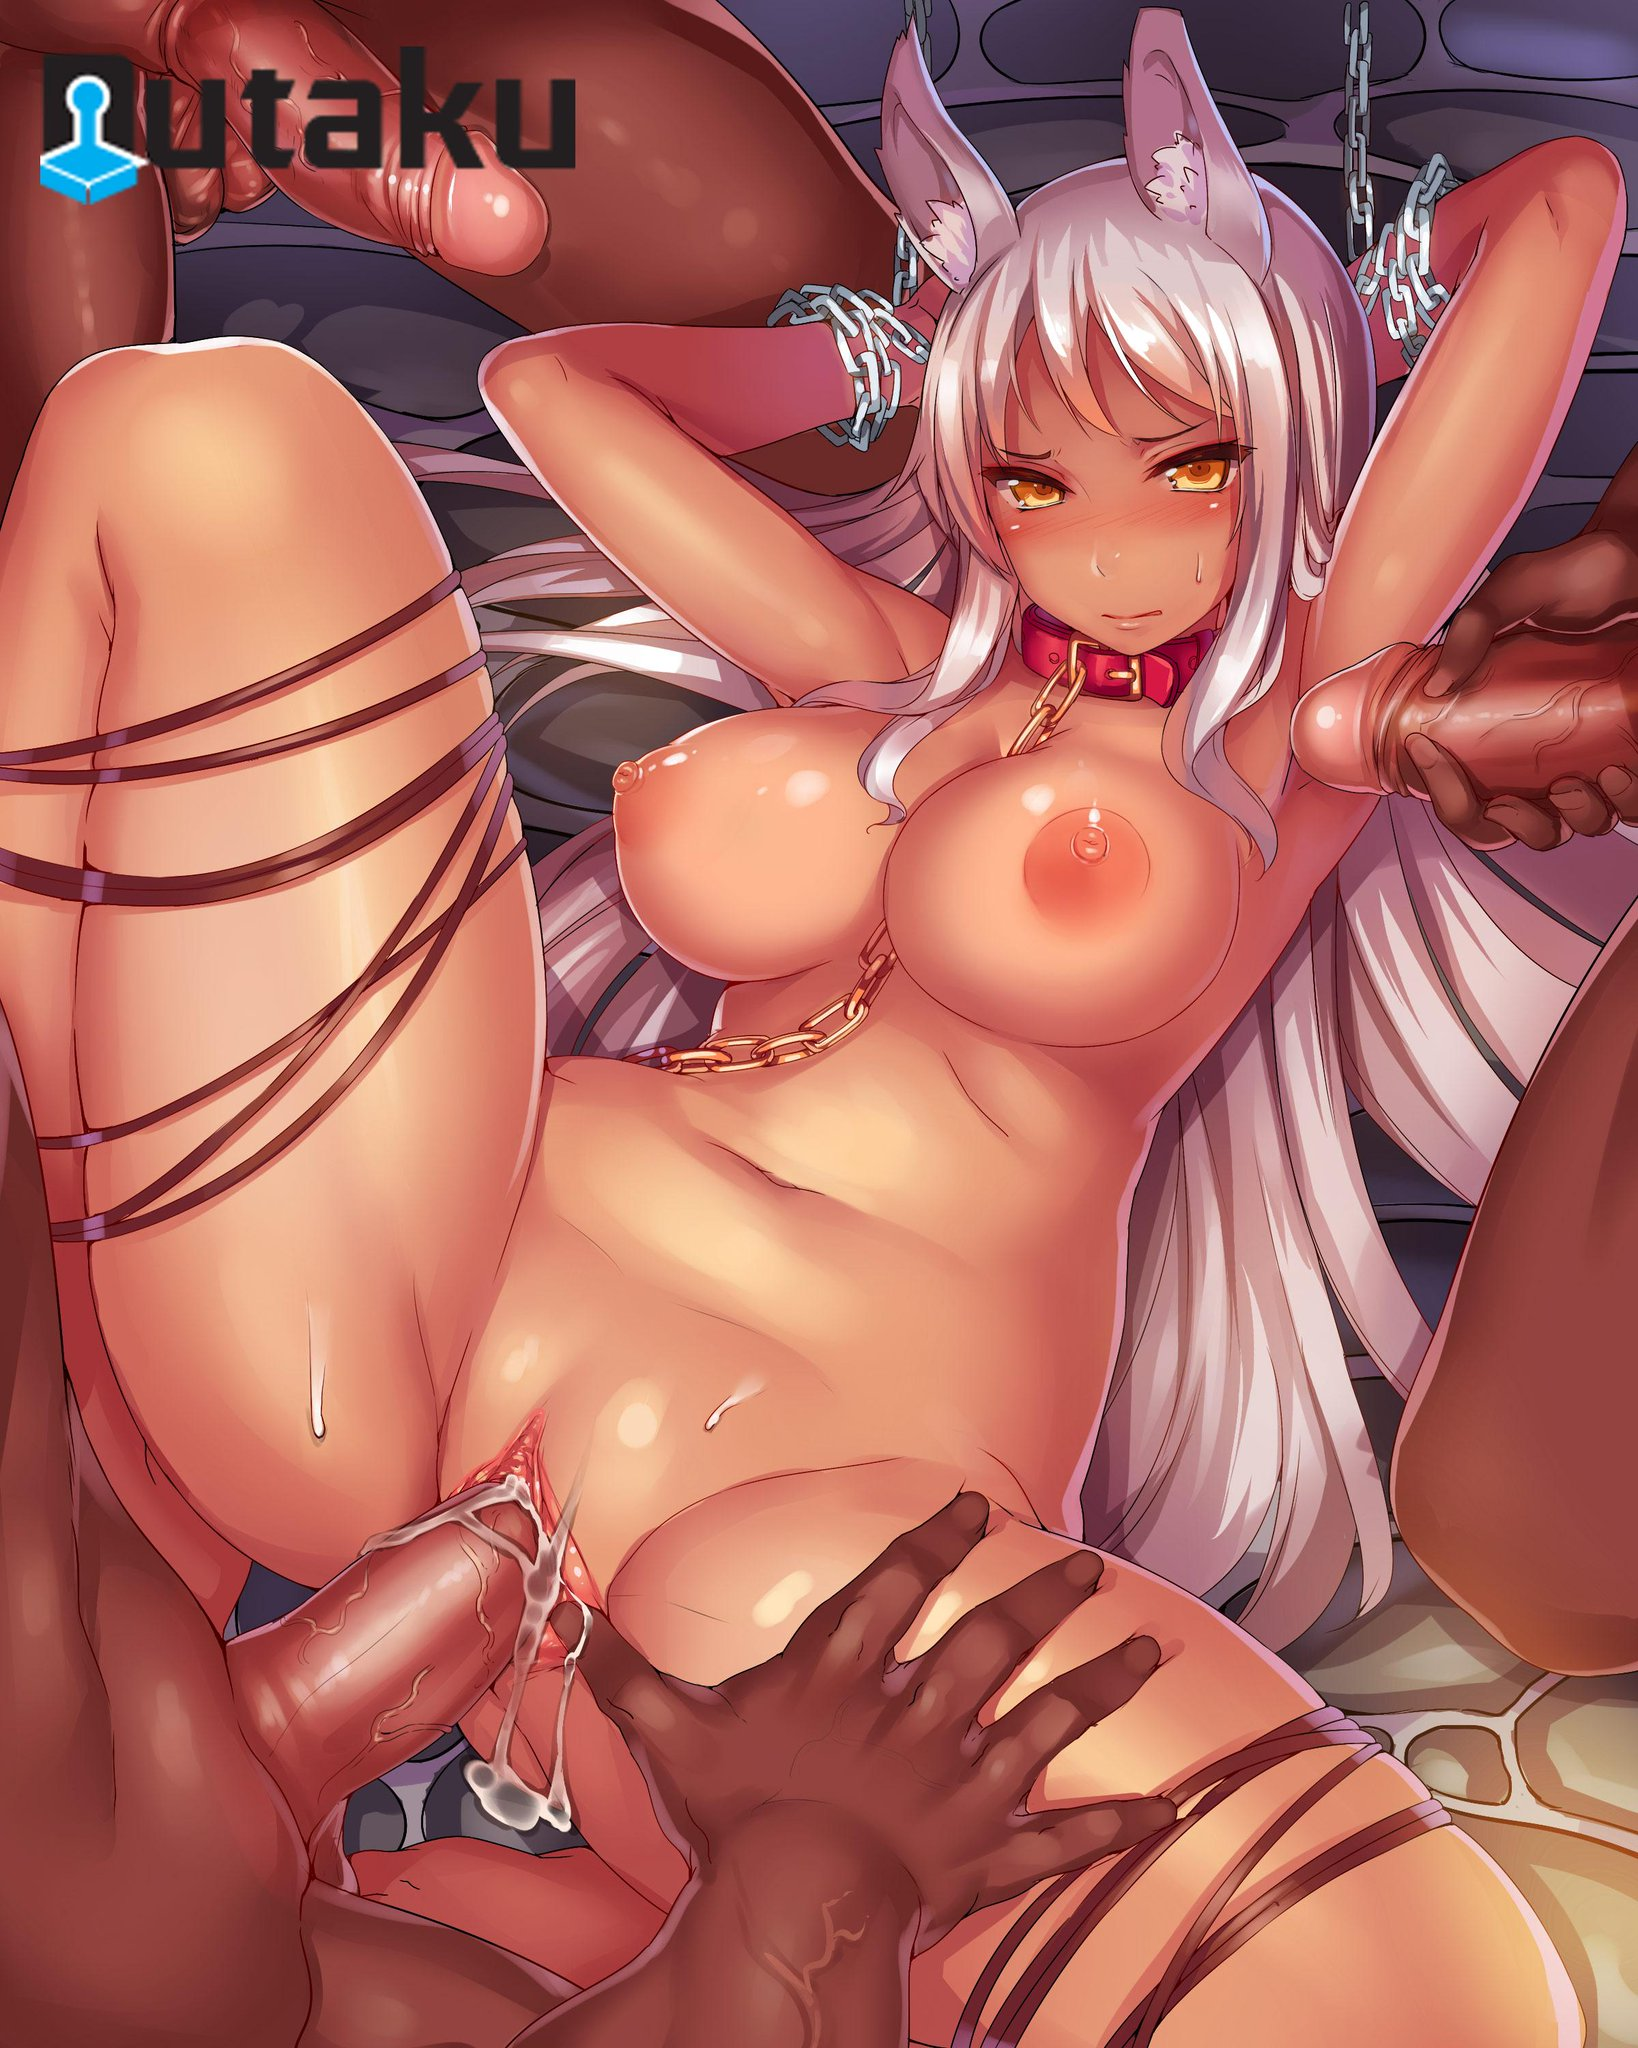 Free games hentai nude videos